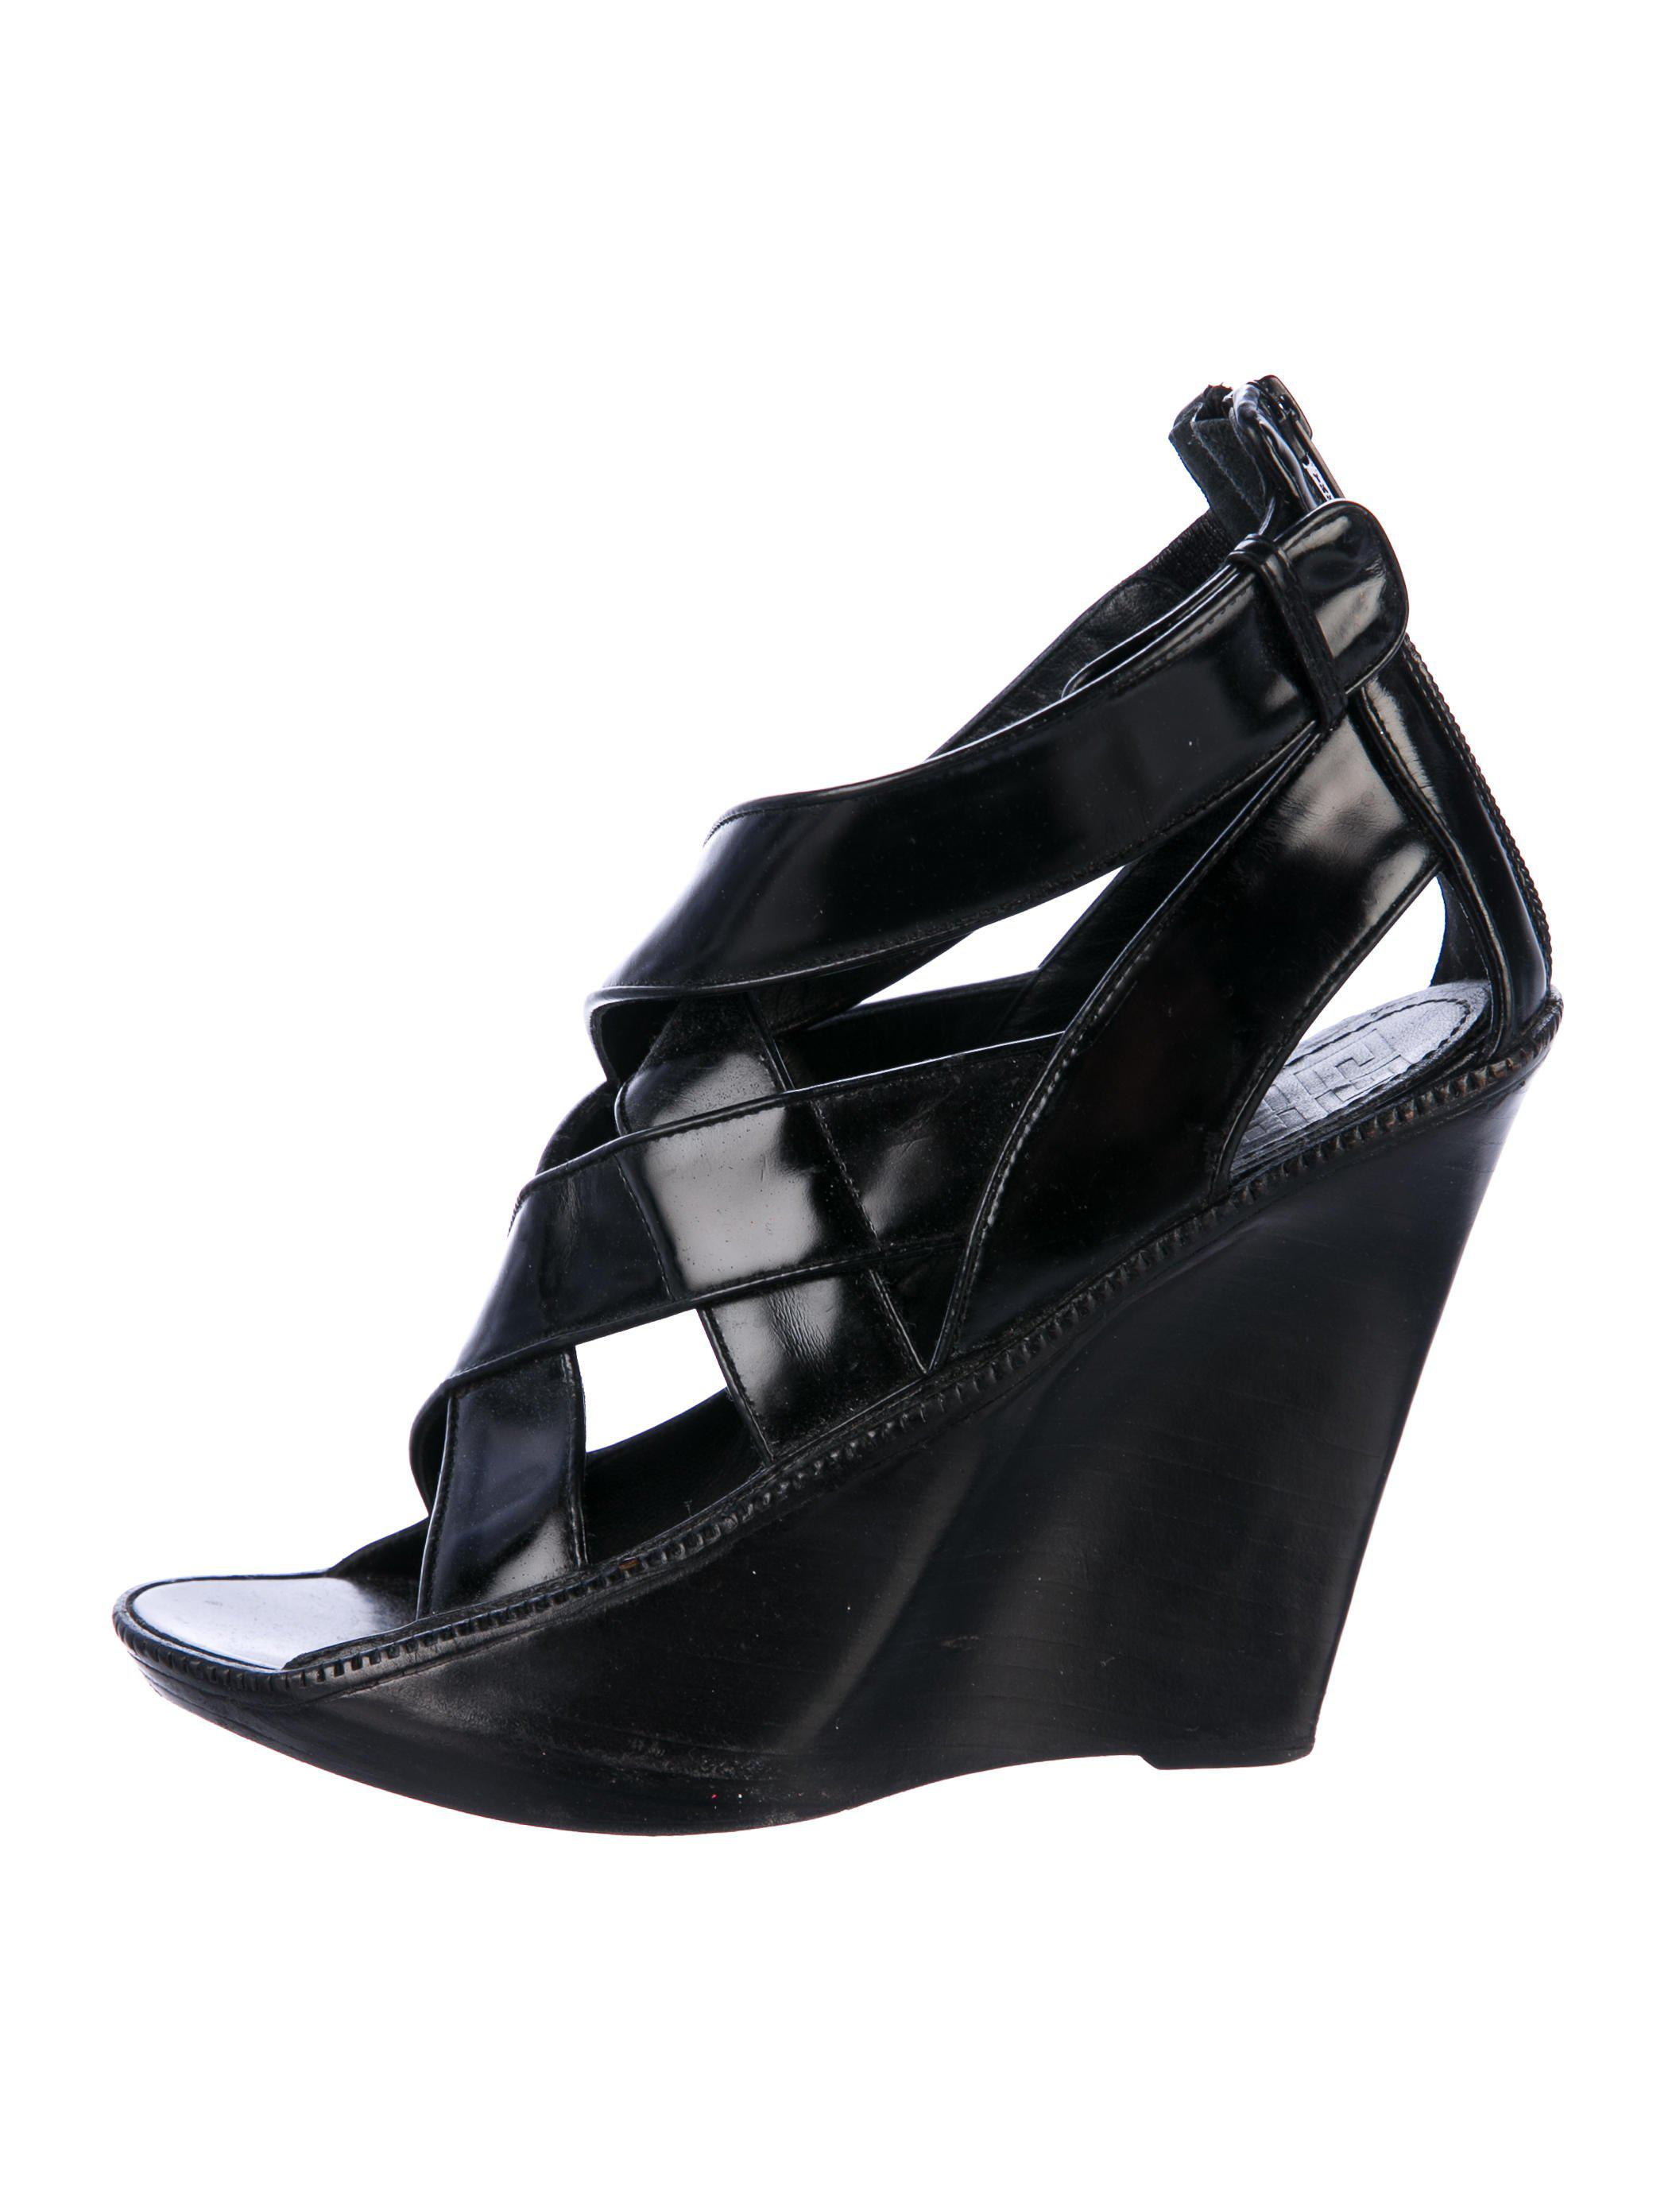 0921e0ce343 Lyst - Givenchy Leather Cutout Sandals in Black